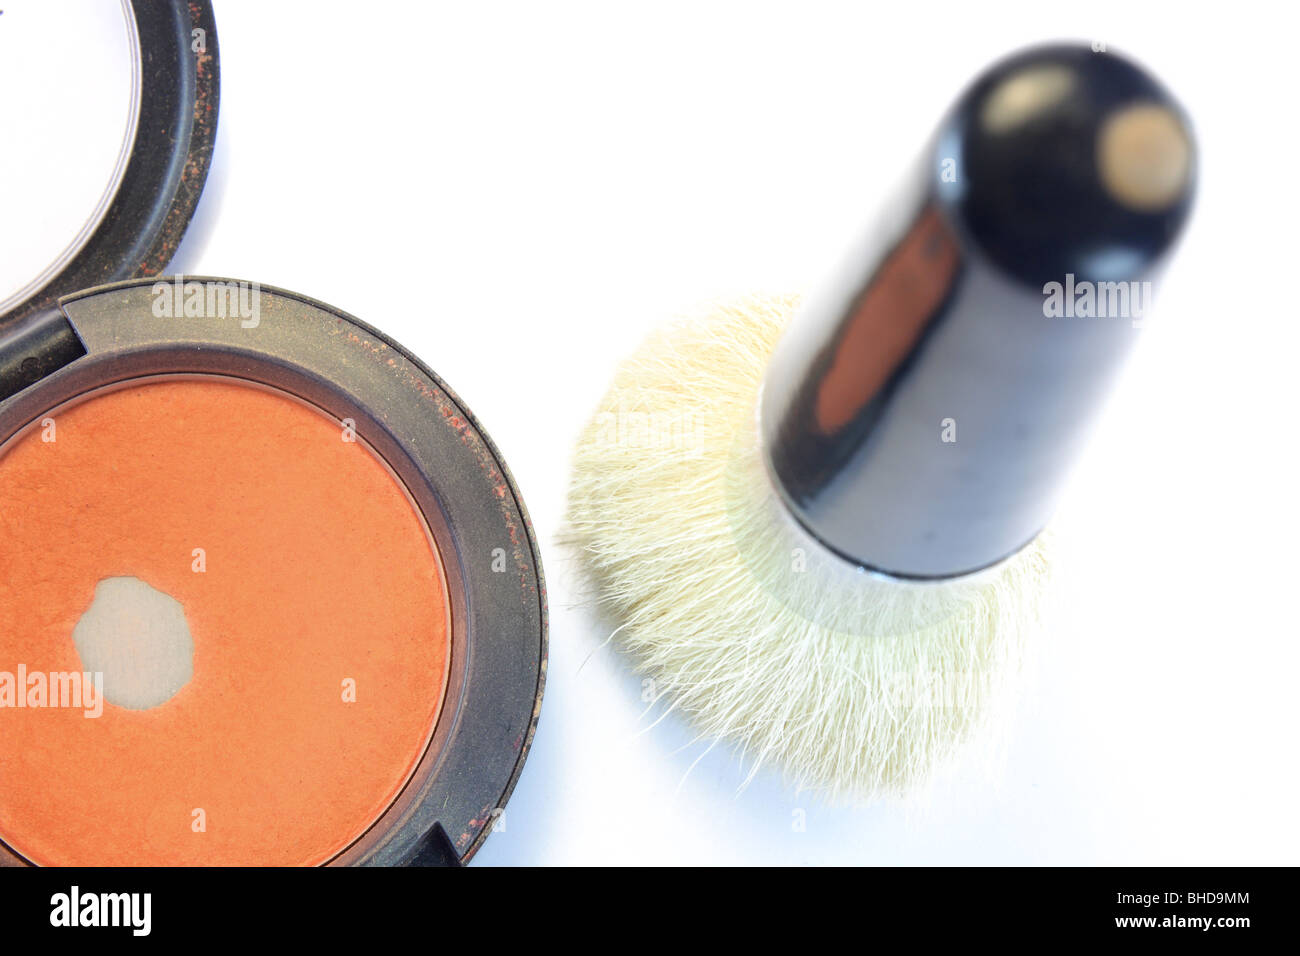 white brush and eyeshadow or powdery - Stock Image